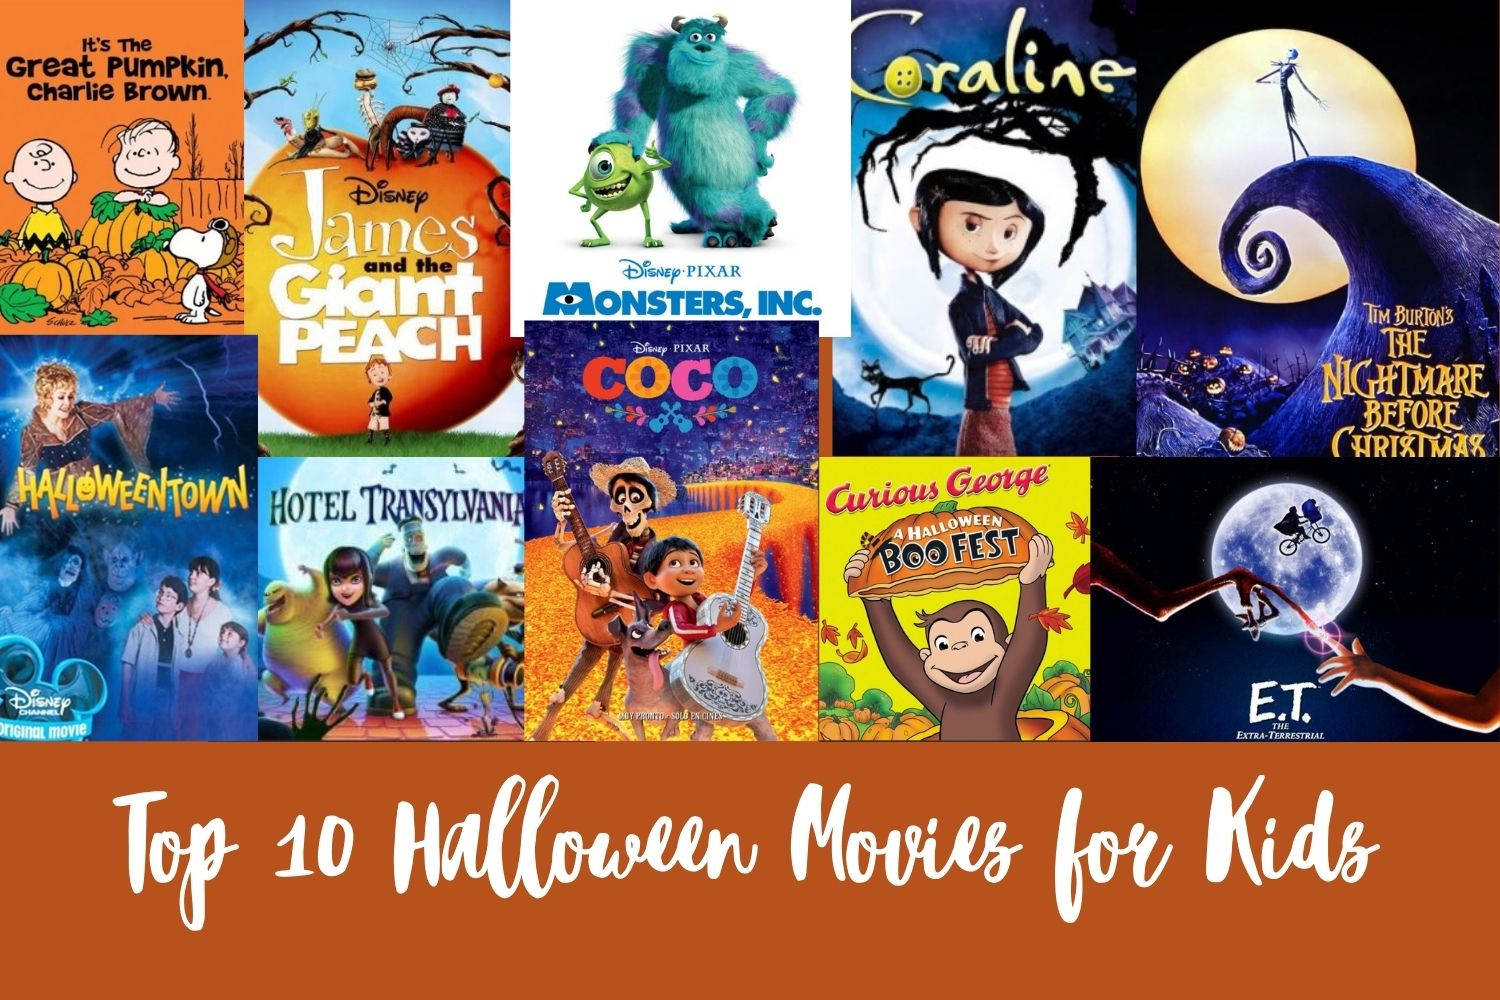 Top 10 Halloween Movies for Little Kids